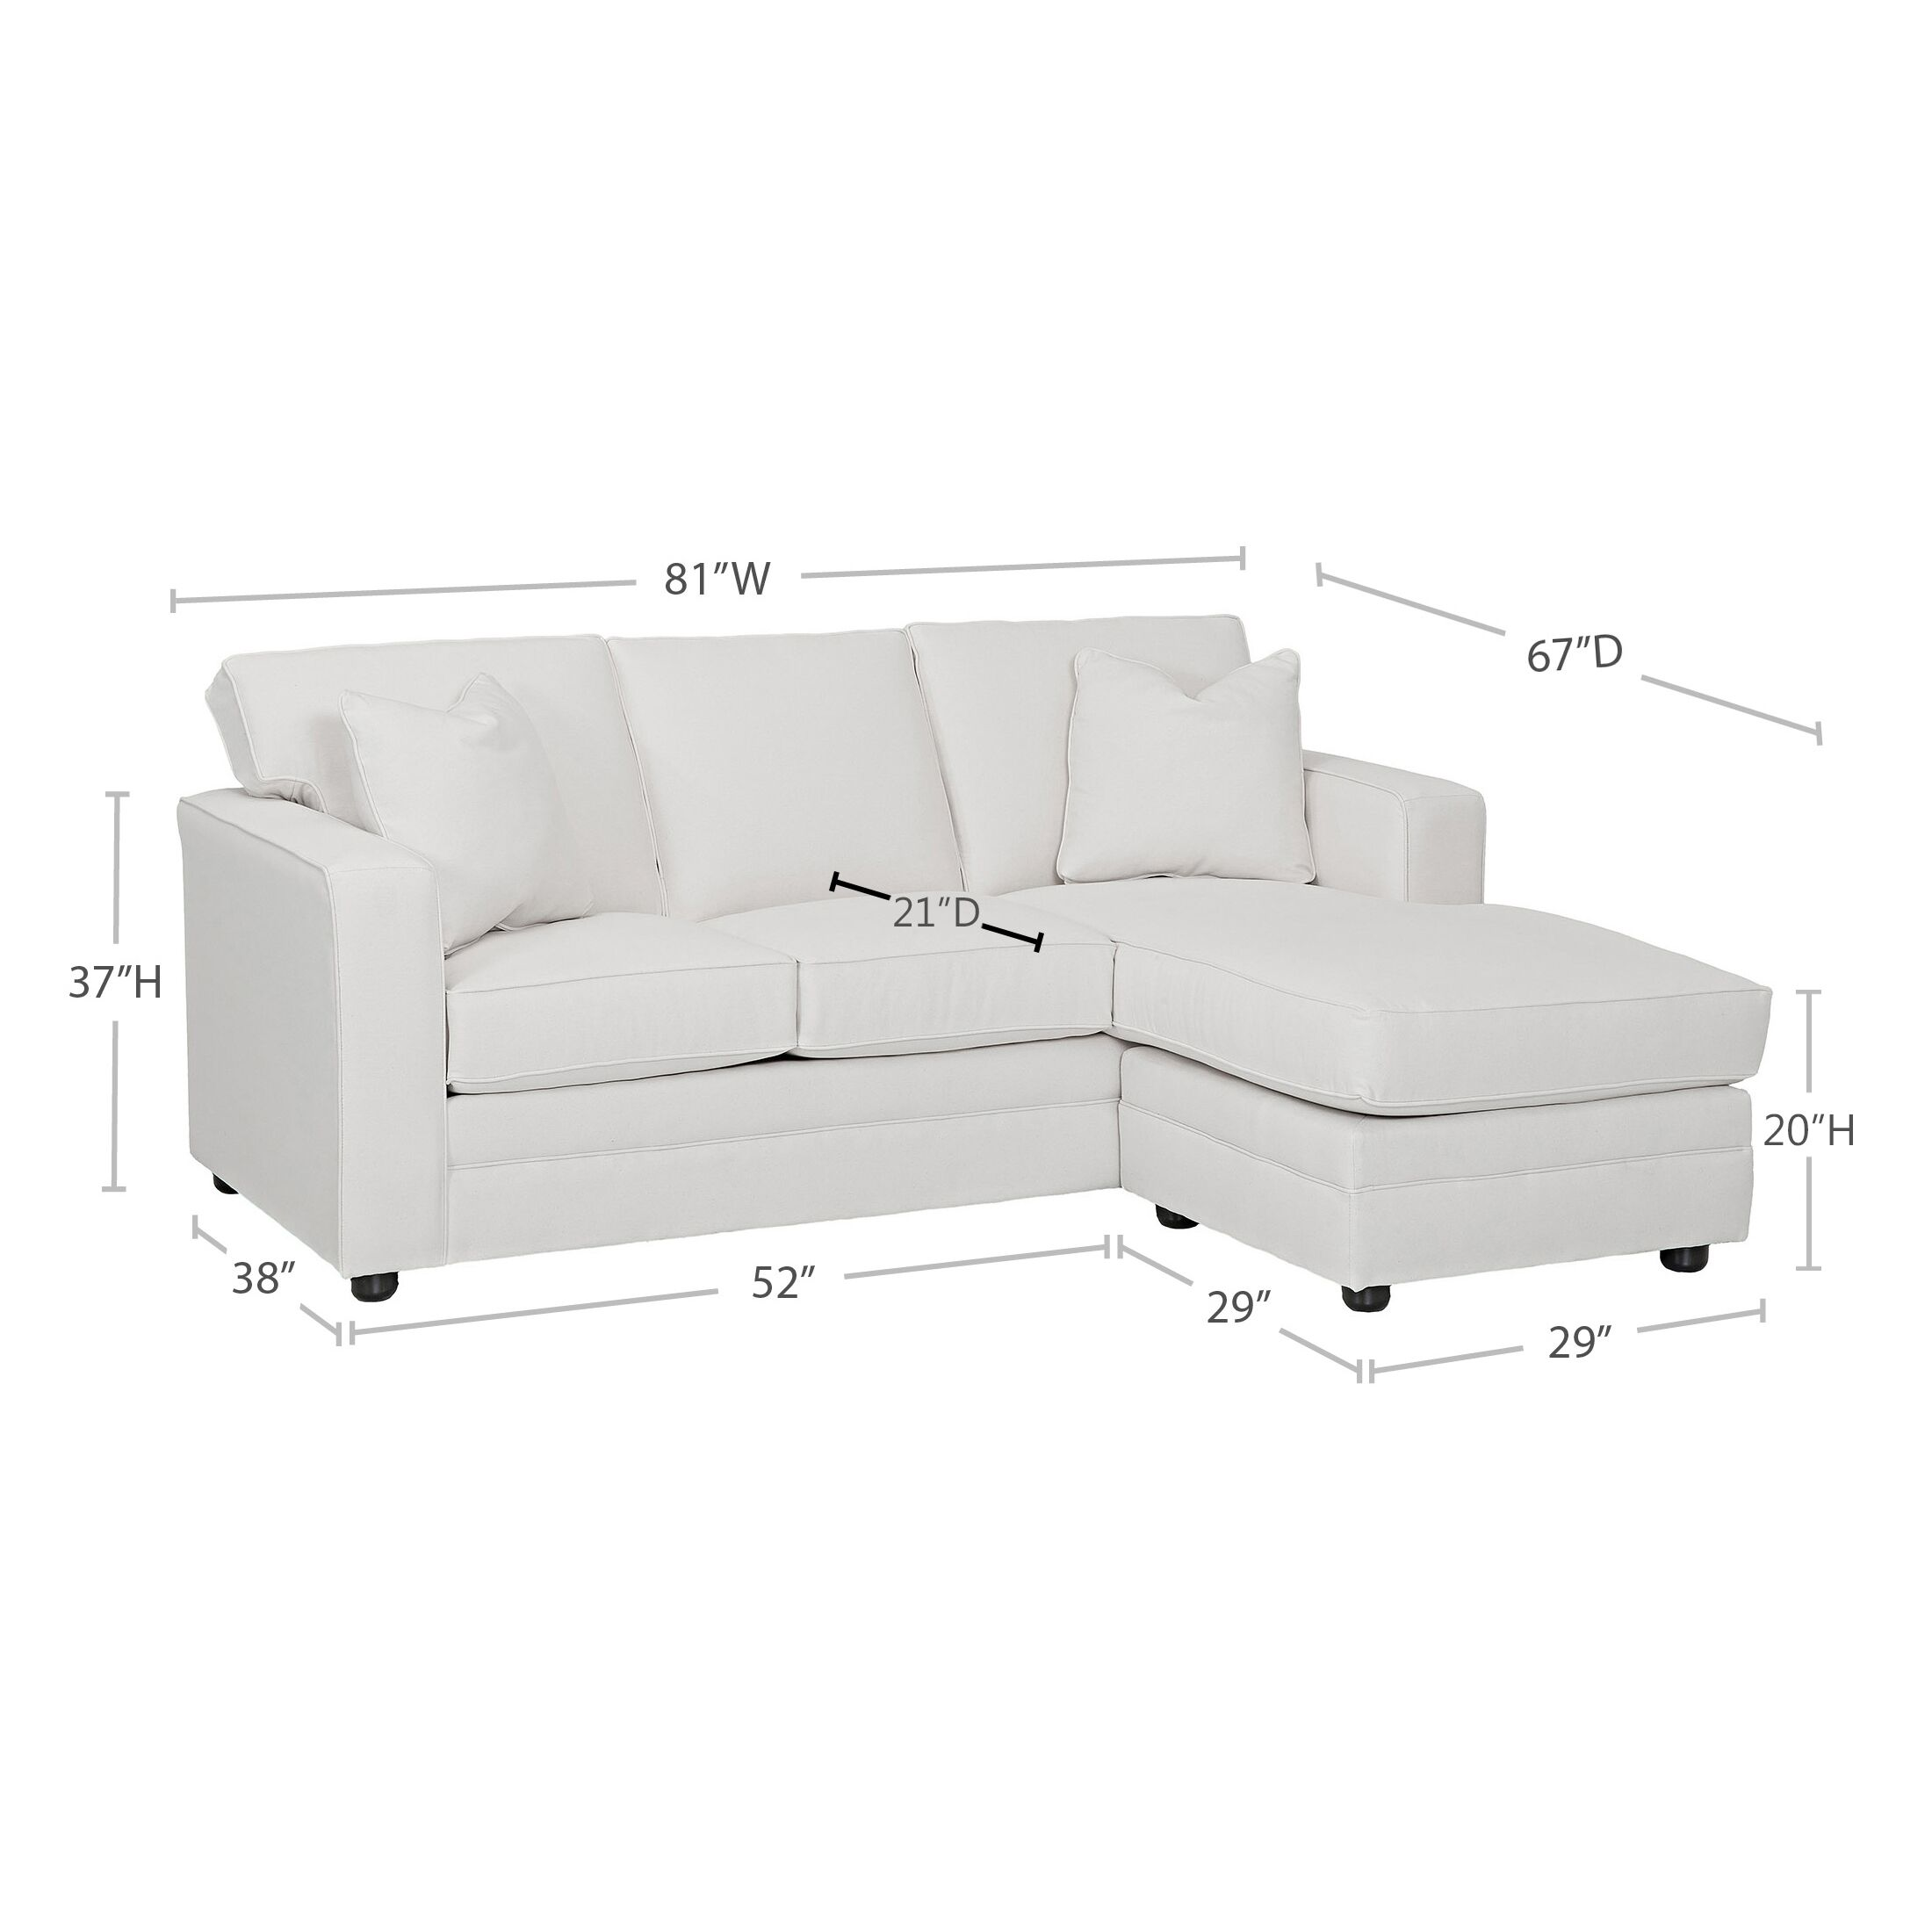 Andrew Reversible Sectional Body Fabric: Hilo Flax, Pillow Fabric: Fandango Stone, Piping Fabric: Spinnsol Butter